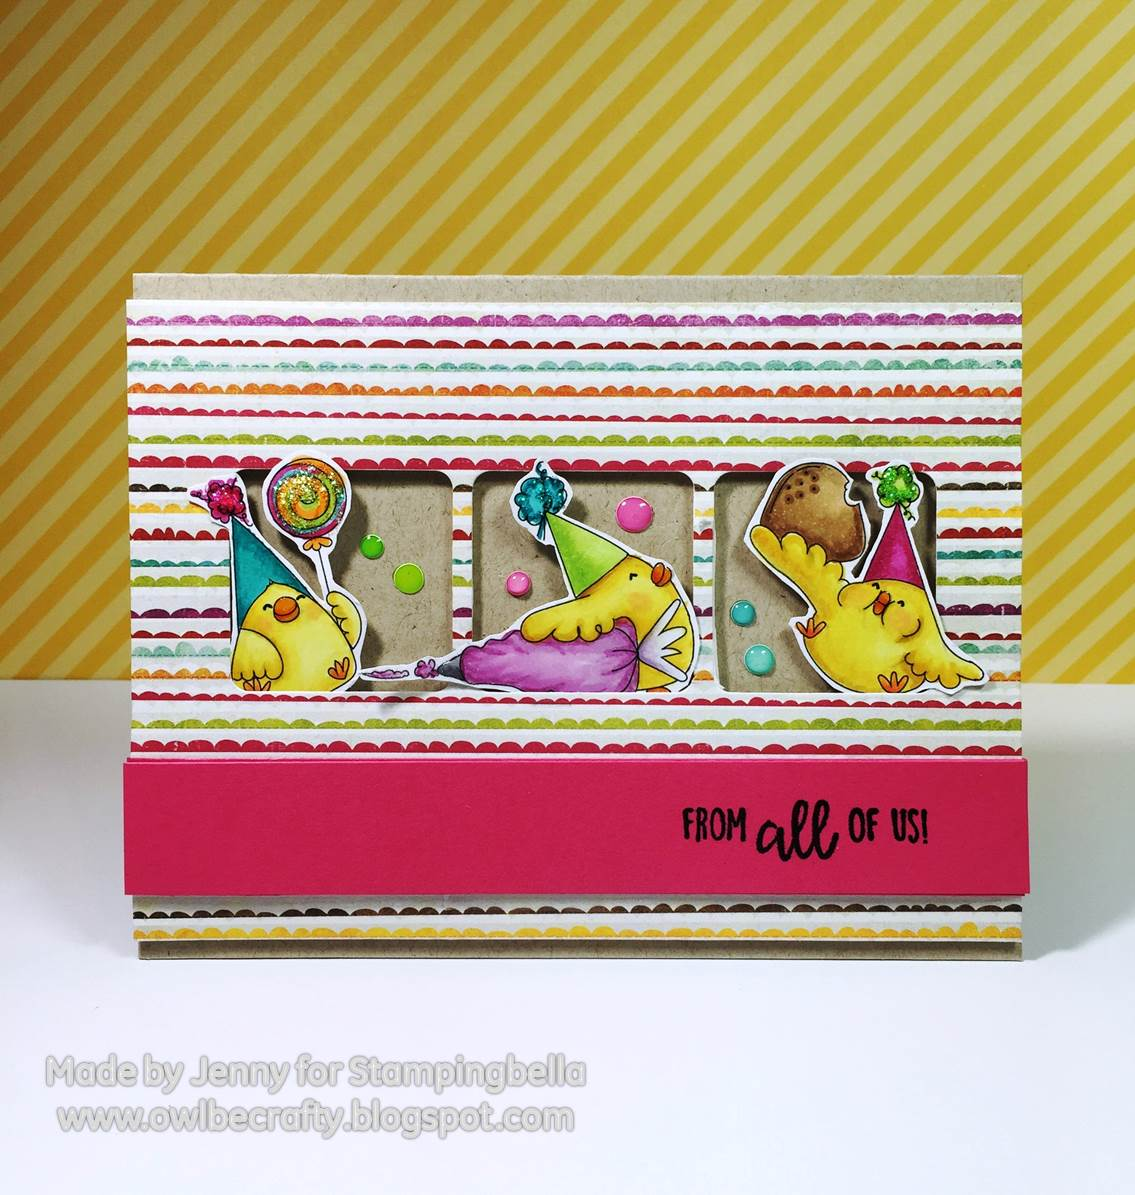 Stamping Bella HOLIDAY RELEASE -SNEAK PEEK DAY 2 -Gingerbread CHICKS